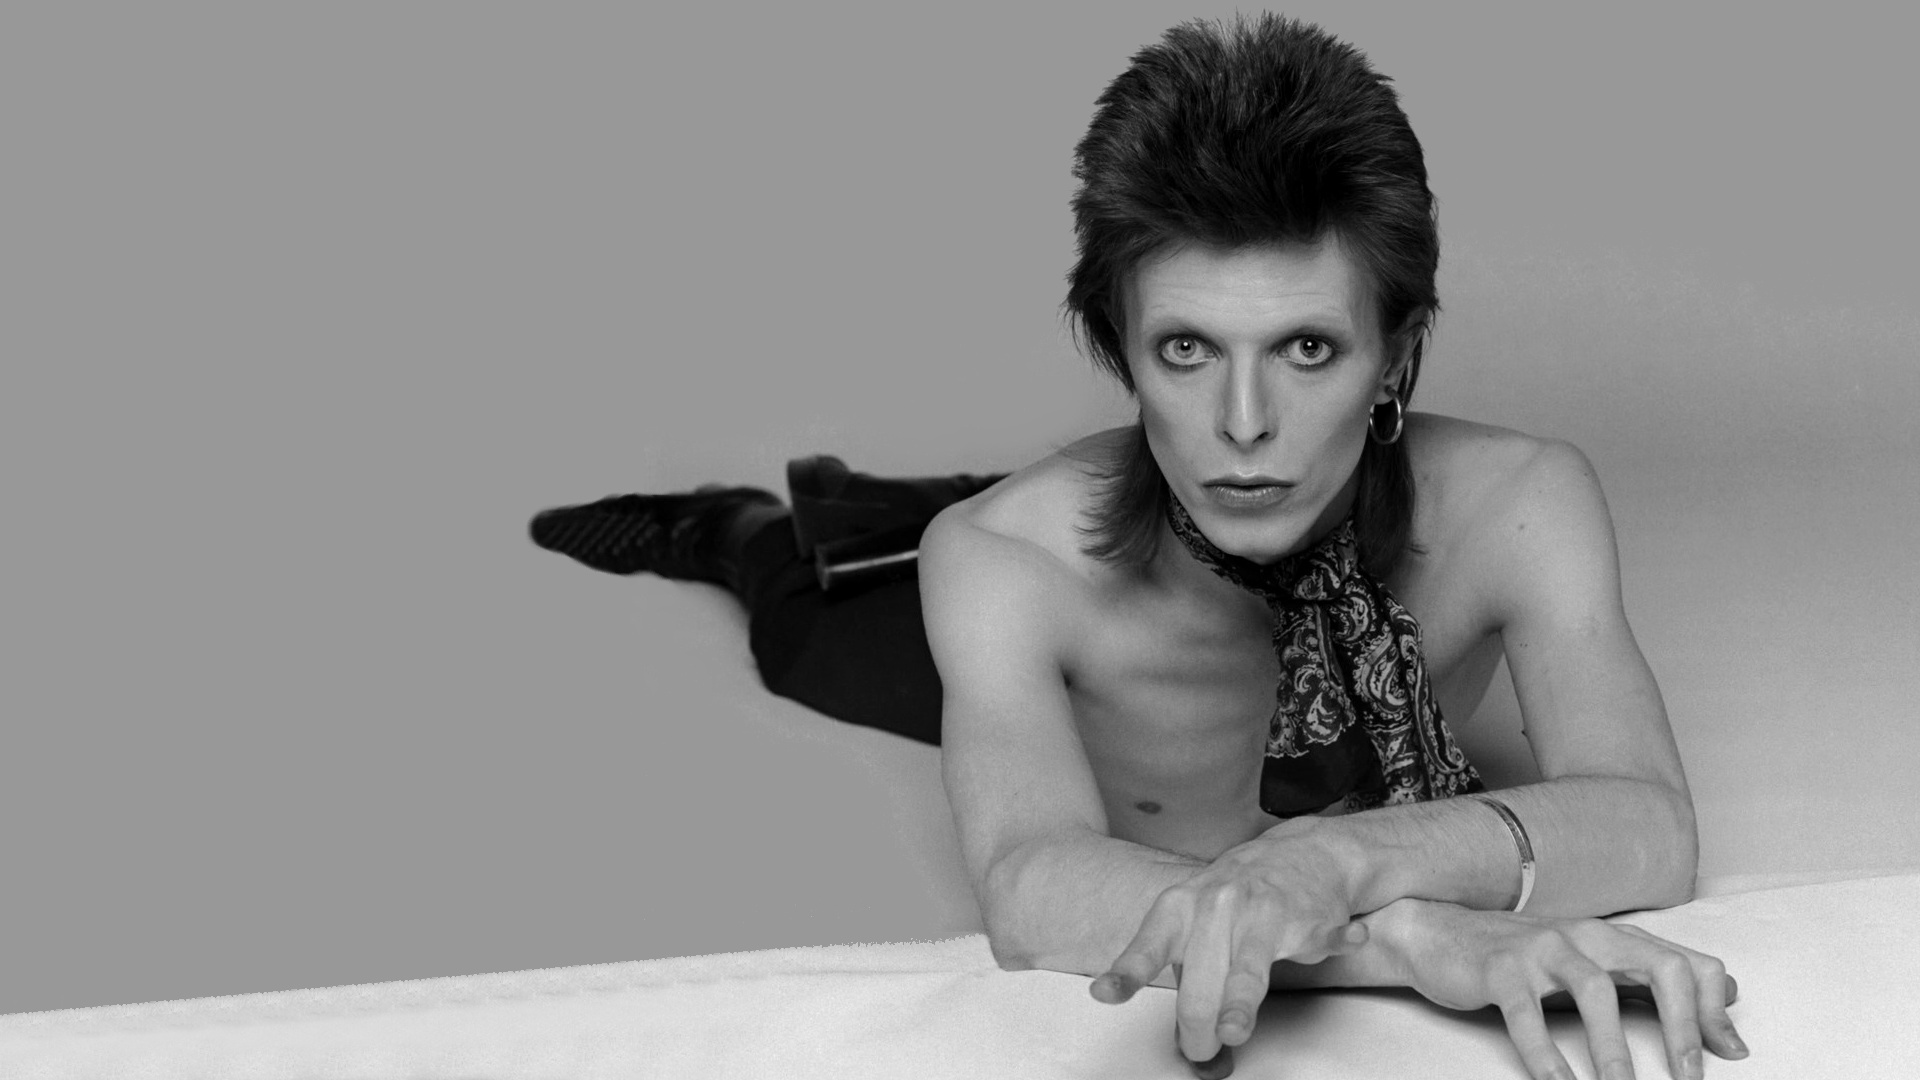 david_bowie_wallpaper_5-1920x1080